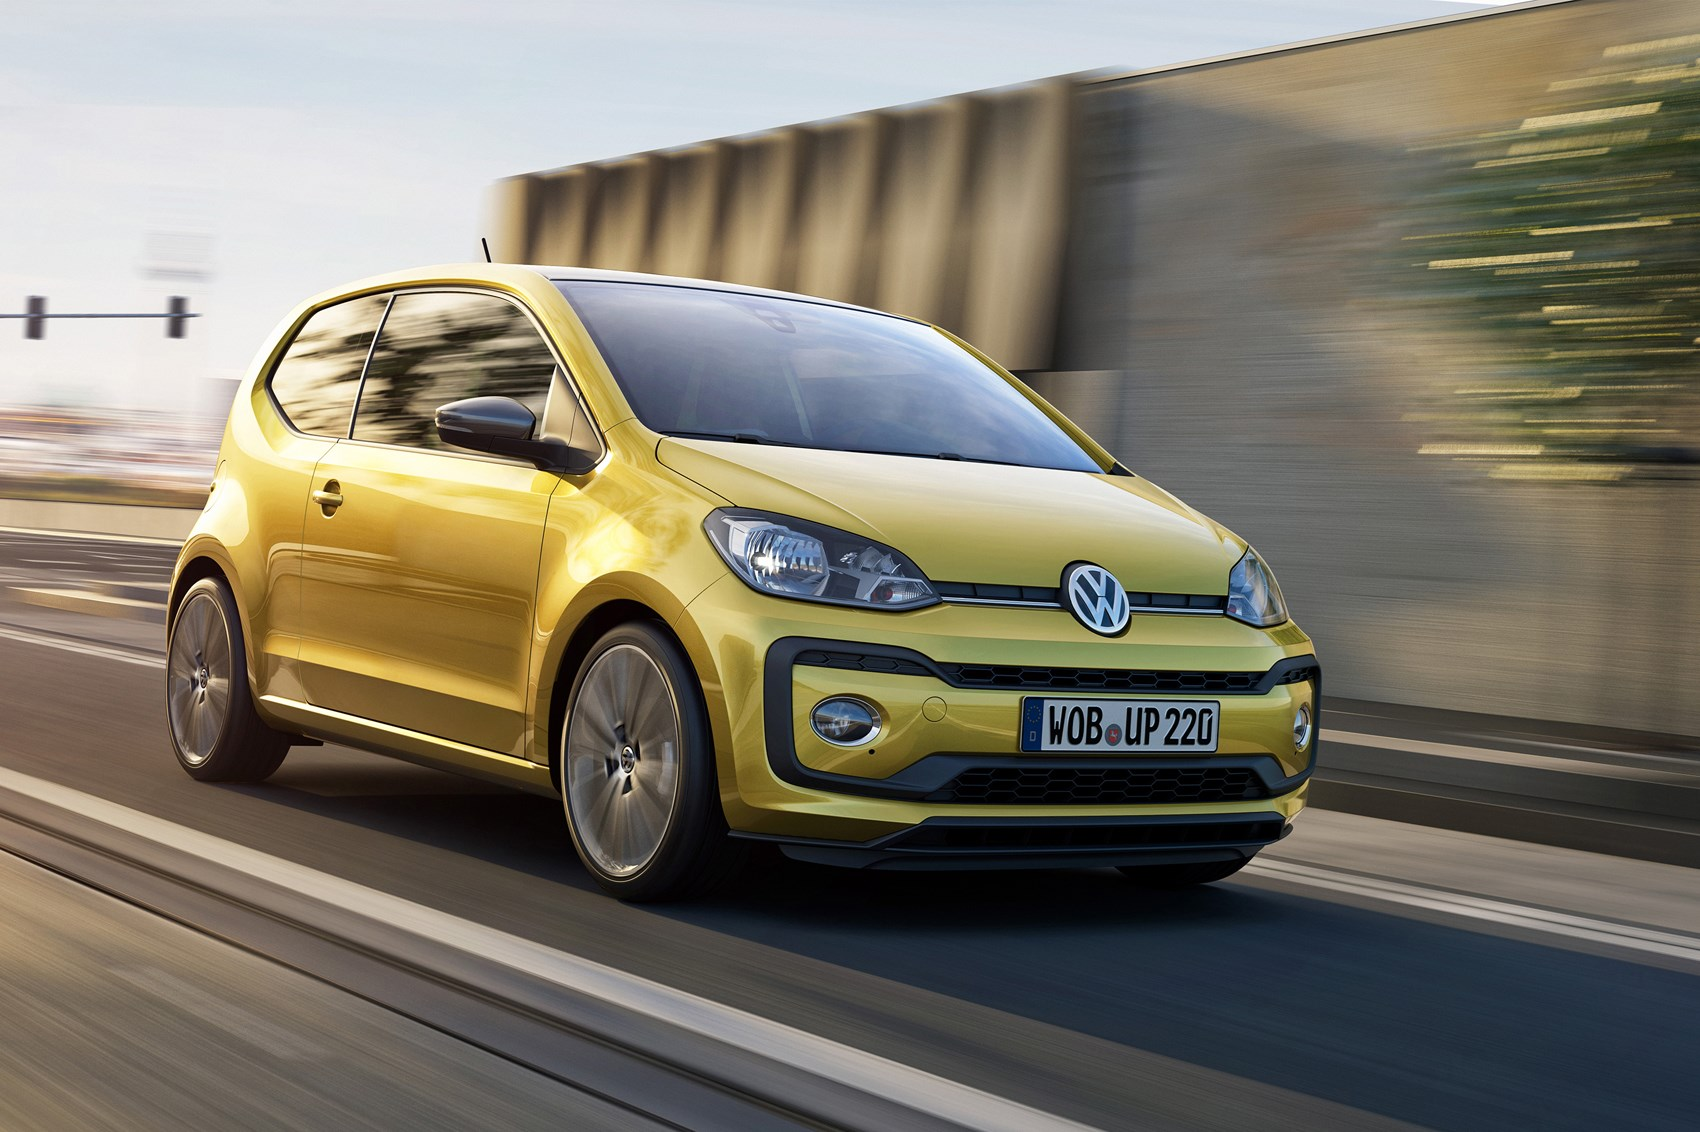 vw up gets a facelift a nipped tucked up for 2016 by car. Black Bedroom Furniture Sets. Home Design Ideas